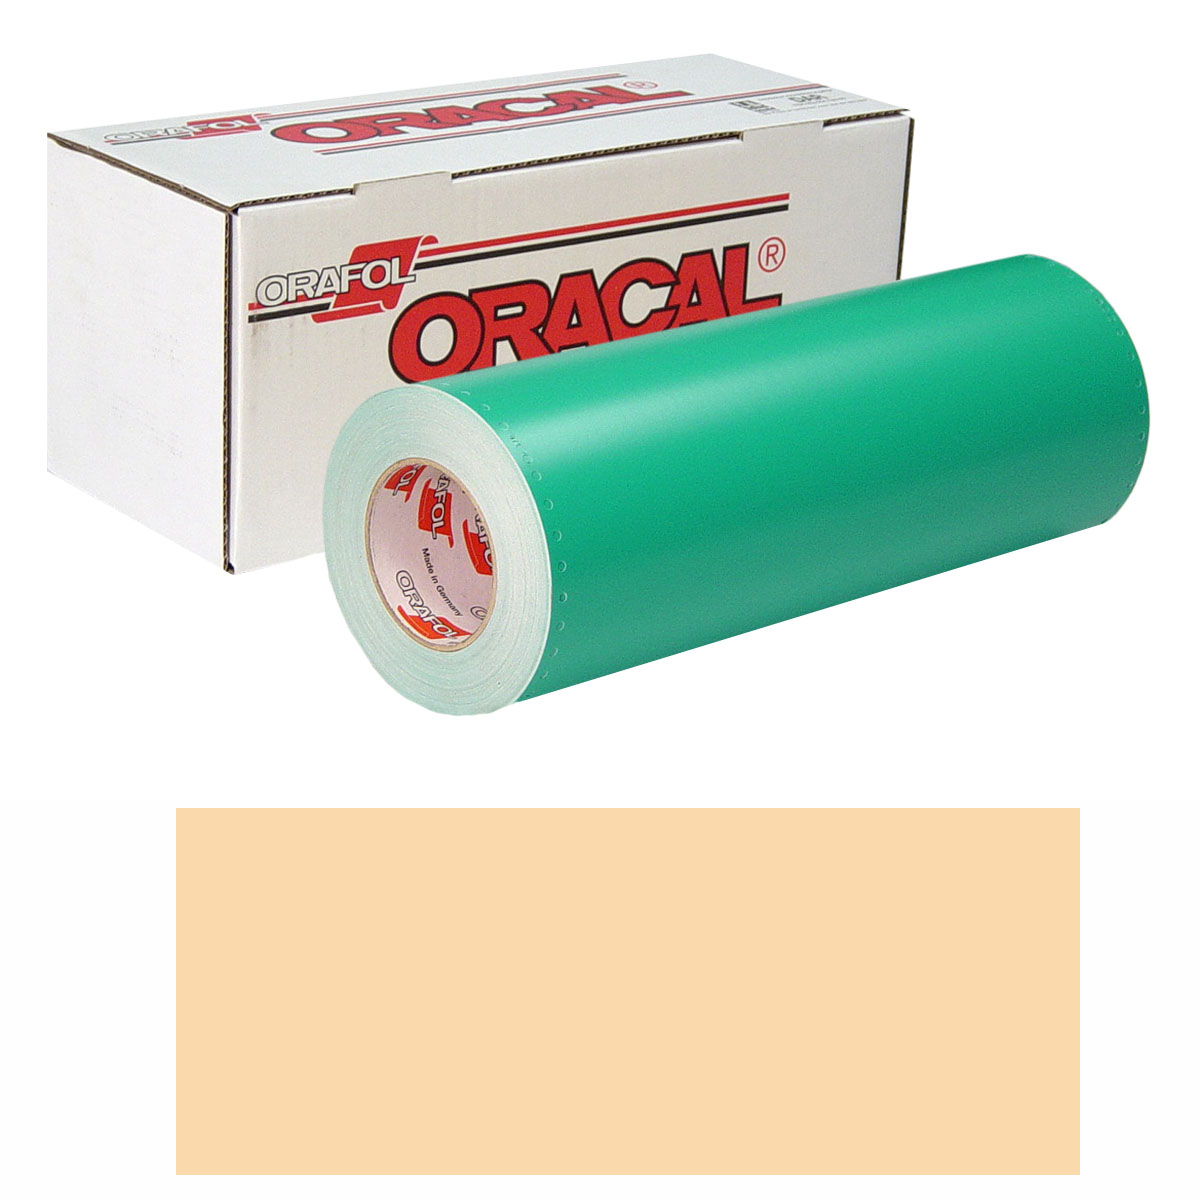 ORACAL 8500 30In X 50Yd 011 Pale Brown